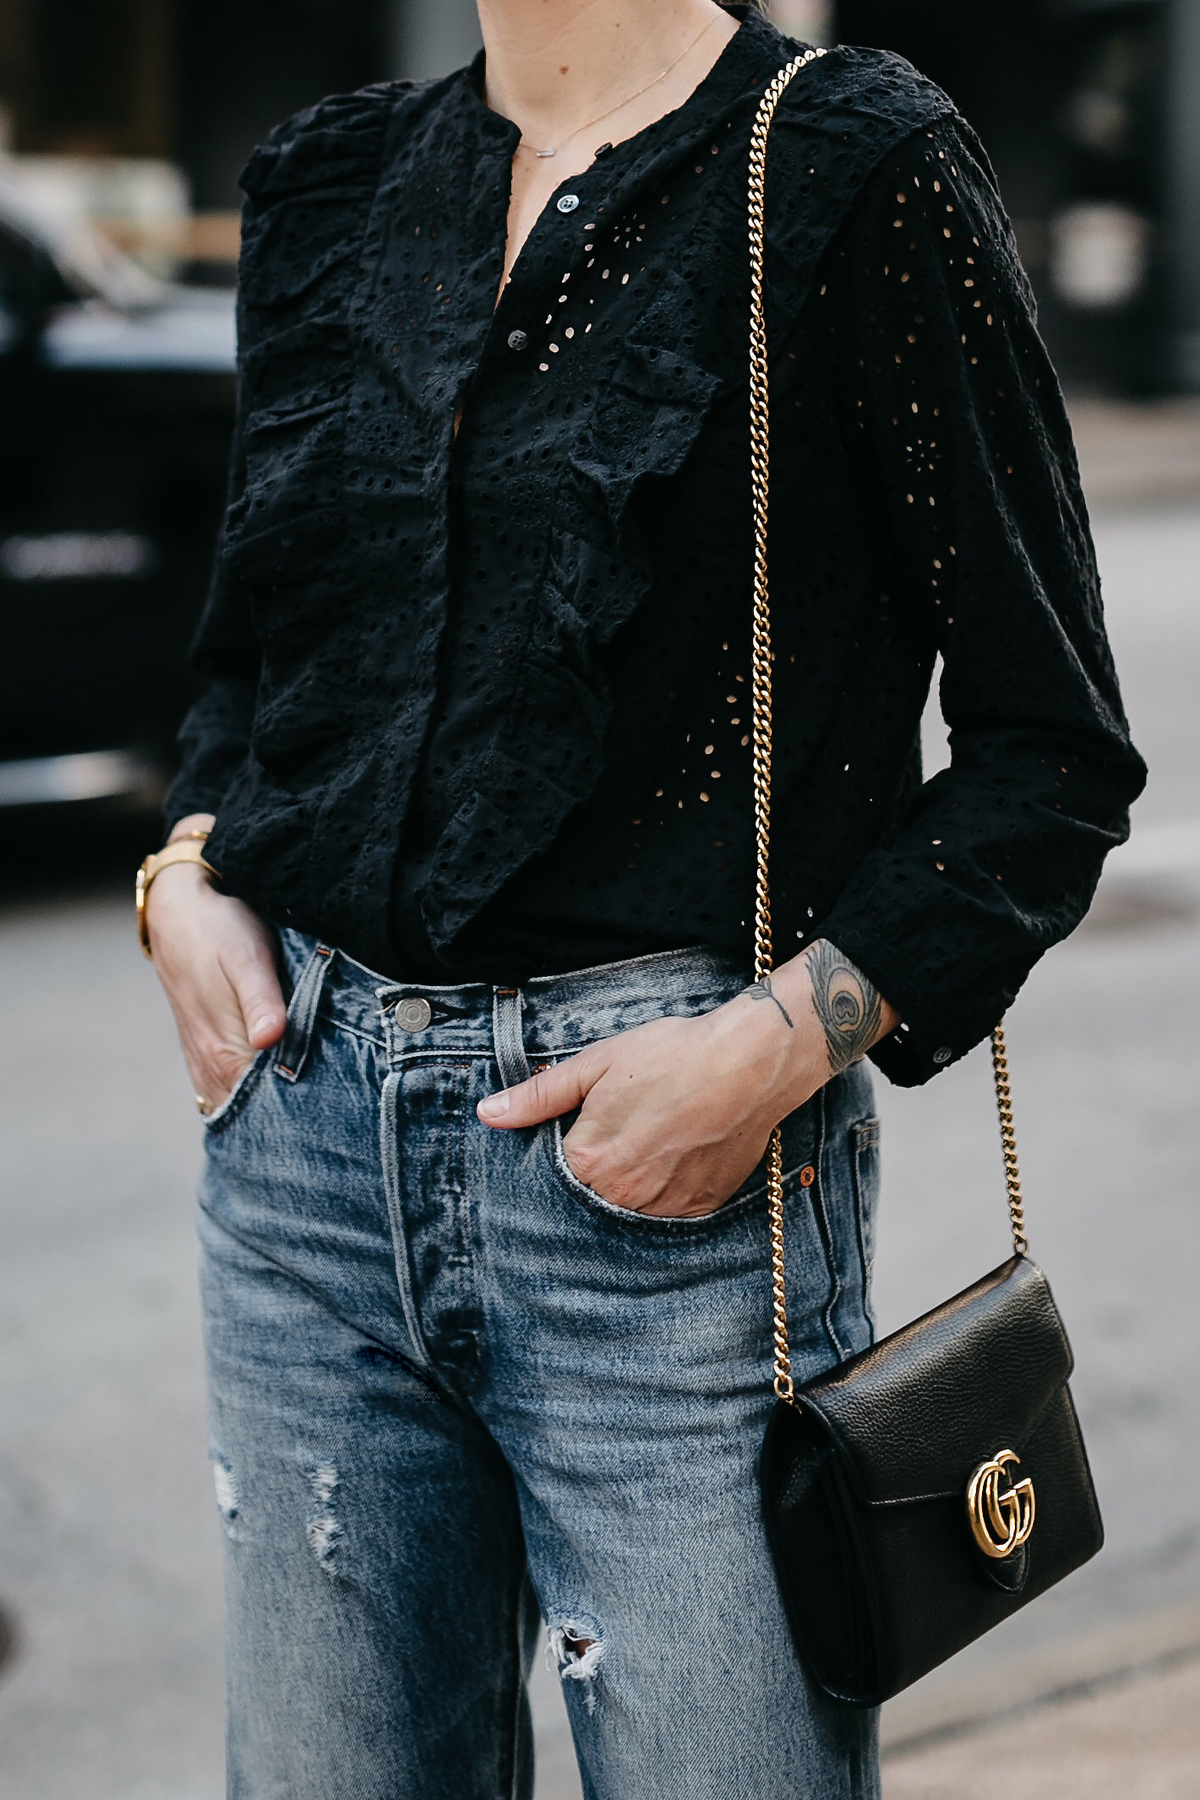 Madewell Black Eyelet Blouse Denim Ripped Skinny Jeans Gucci Marmont Handbag Fashion Jackson Dallas Blogger Fashion Blogger Street Style